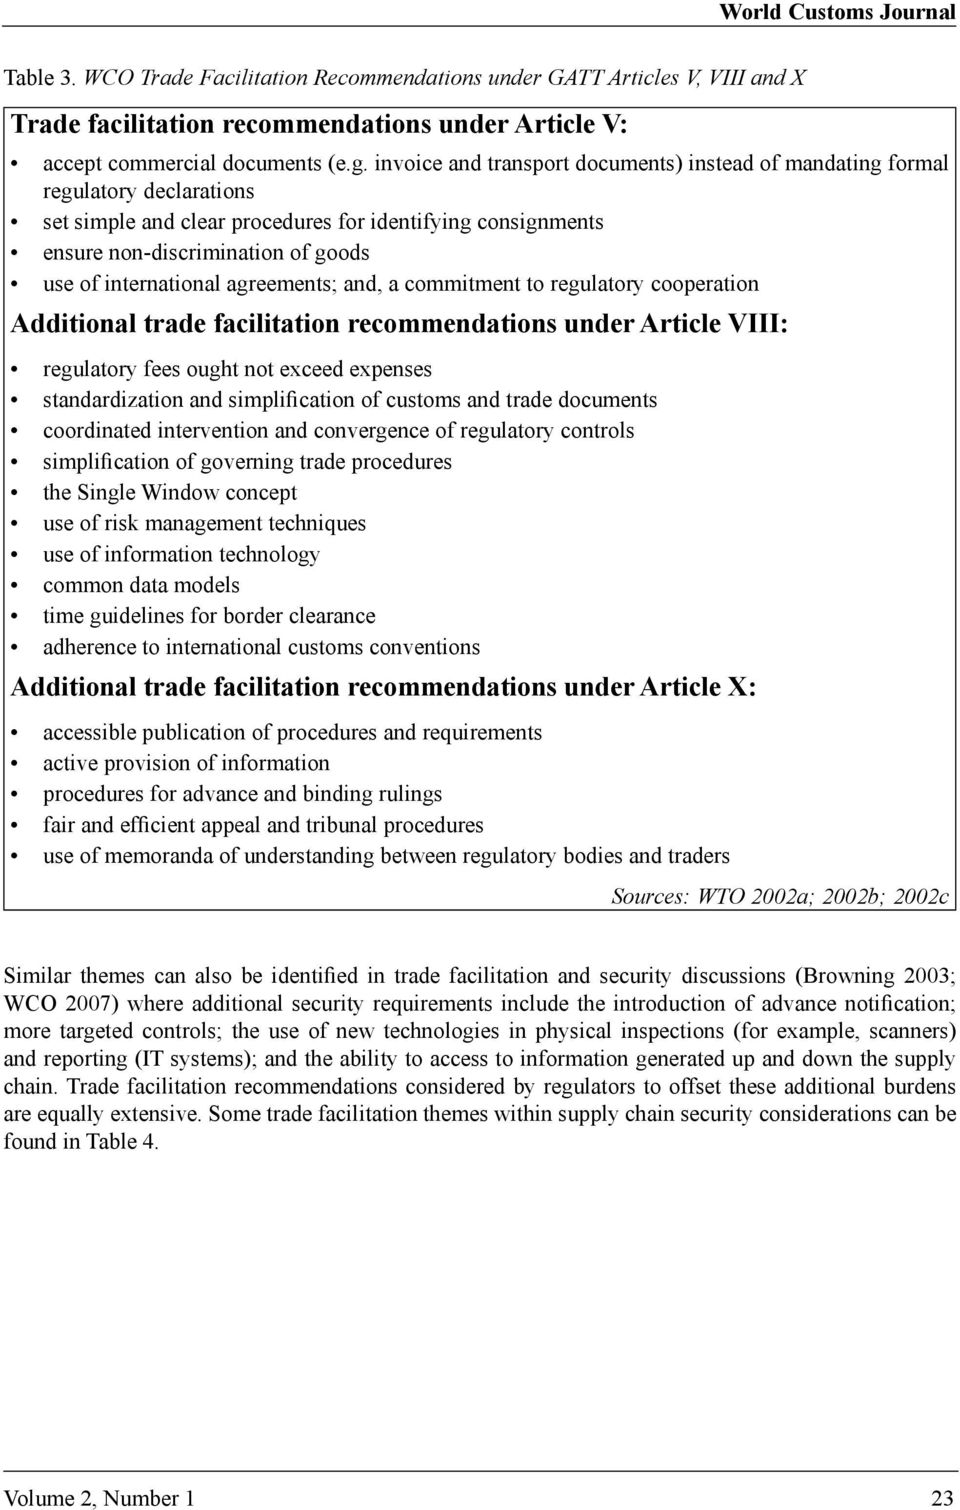 international agreements; and, a commitment to regulatory cooperation Additional trade facilitation recommendations under Article VIII: regulatory fees ought not exceed expenses standardization and